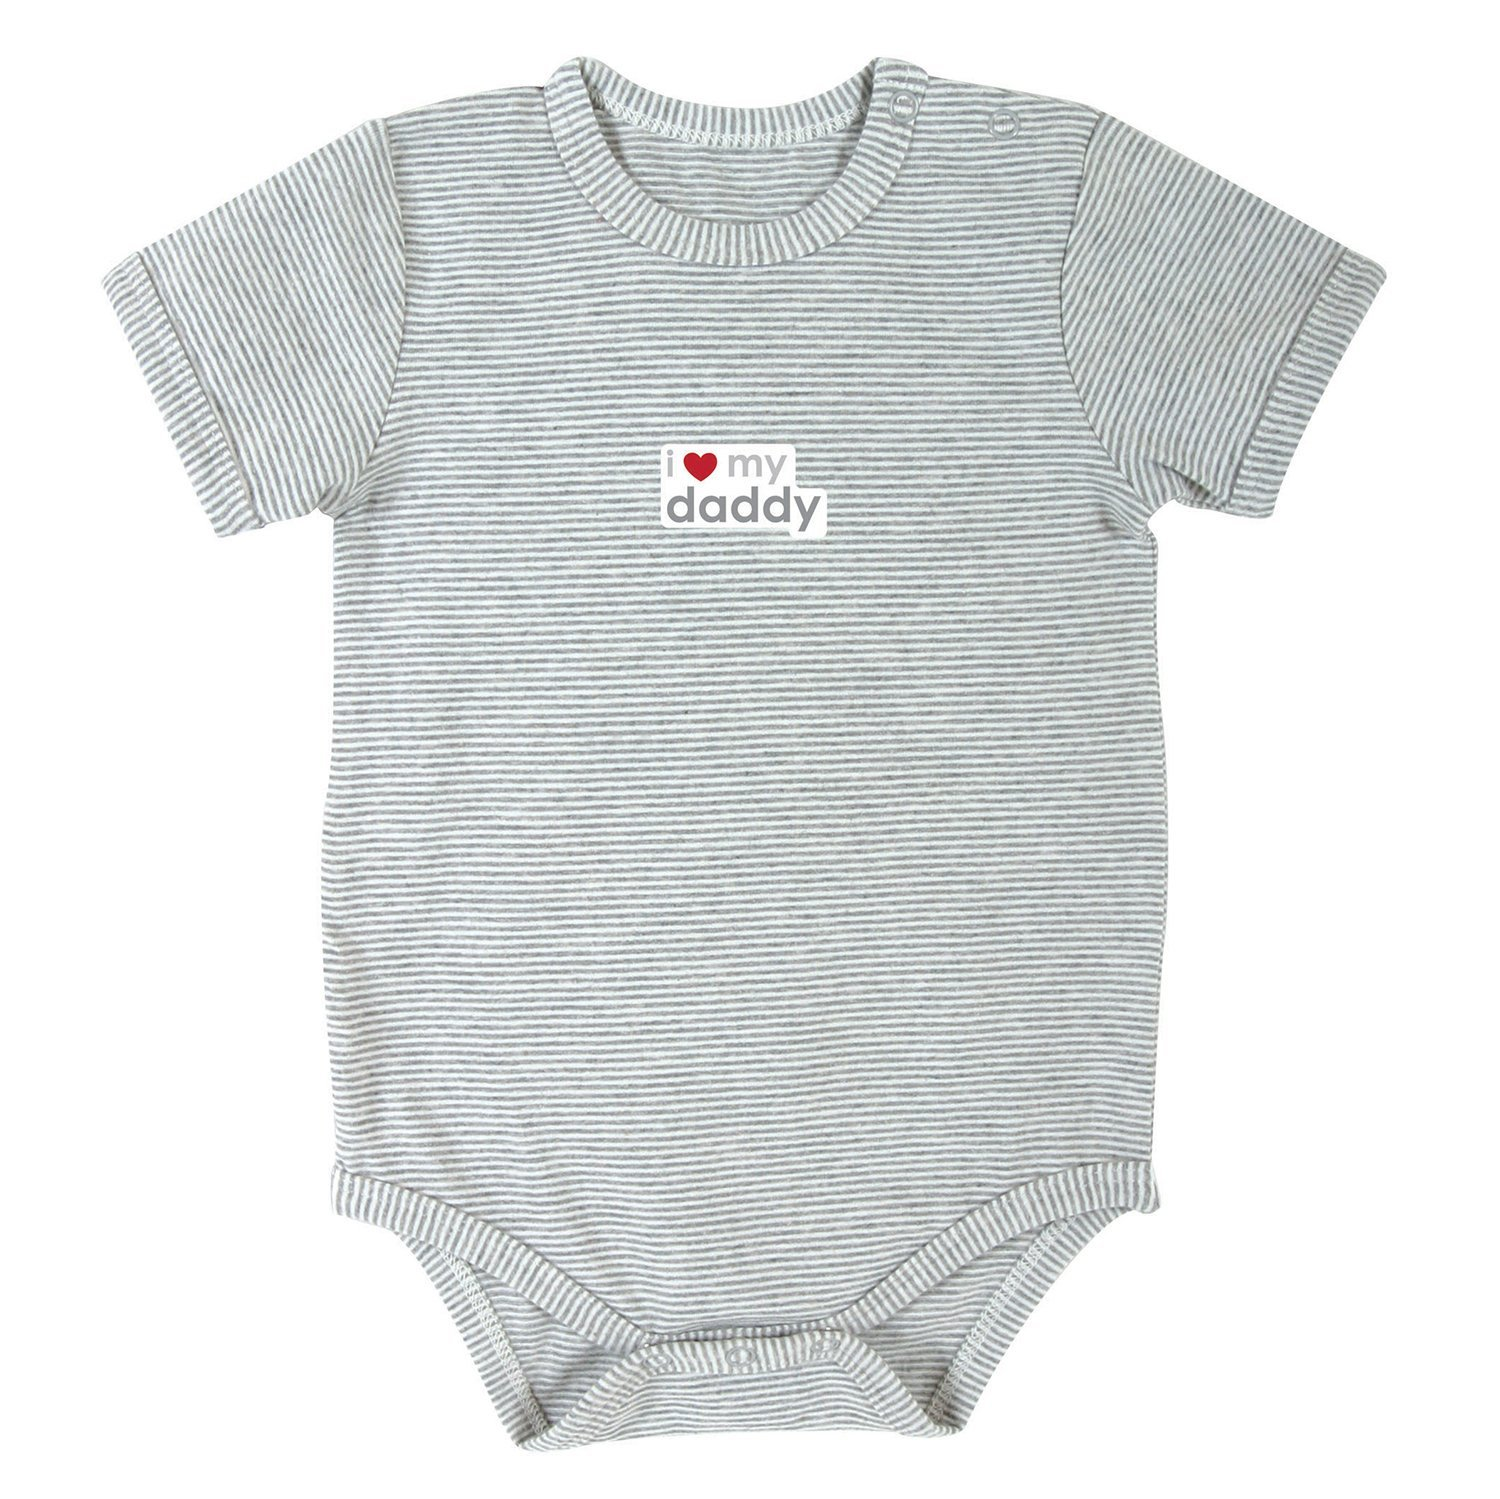 Stephan Baby Gray Stripe Snapshirt-Style Diaper Cover, I Love My Daddy, 0-3 Months